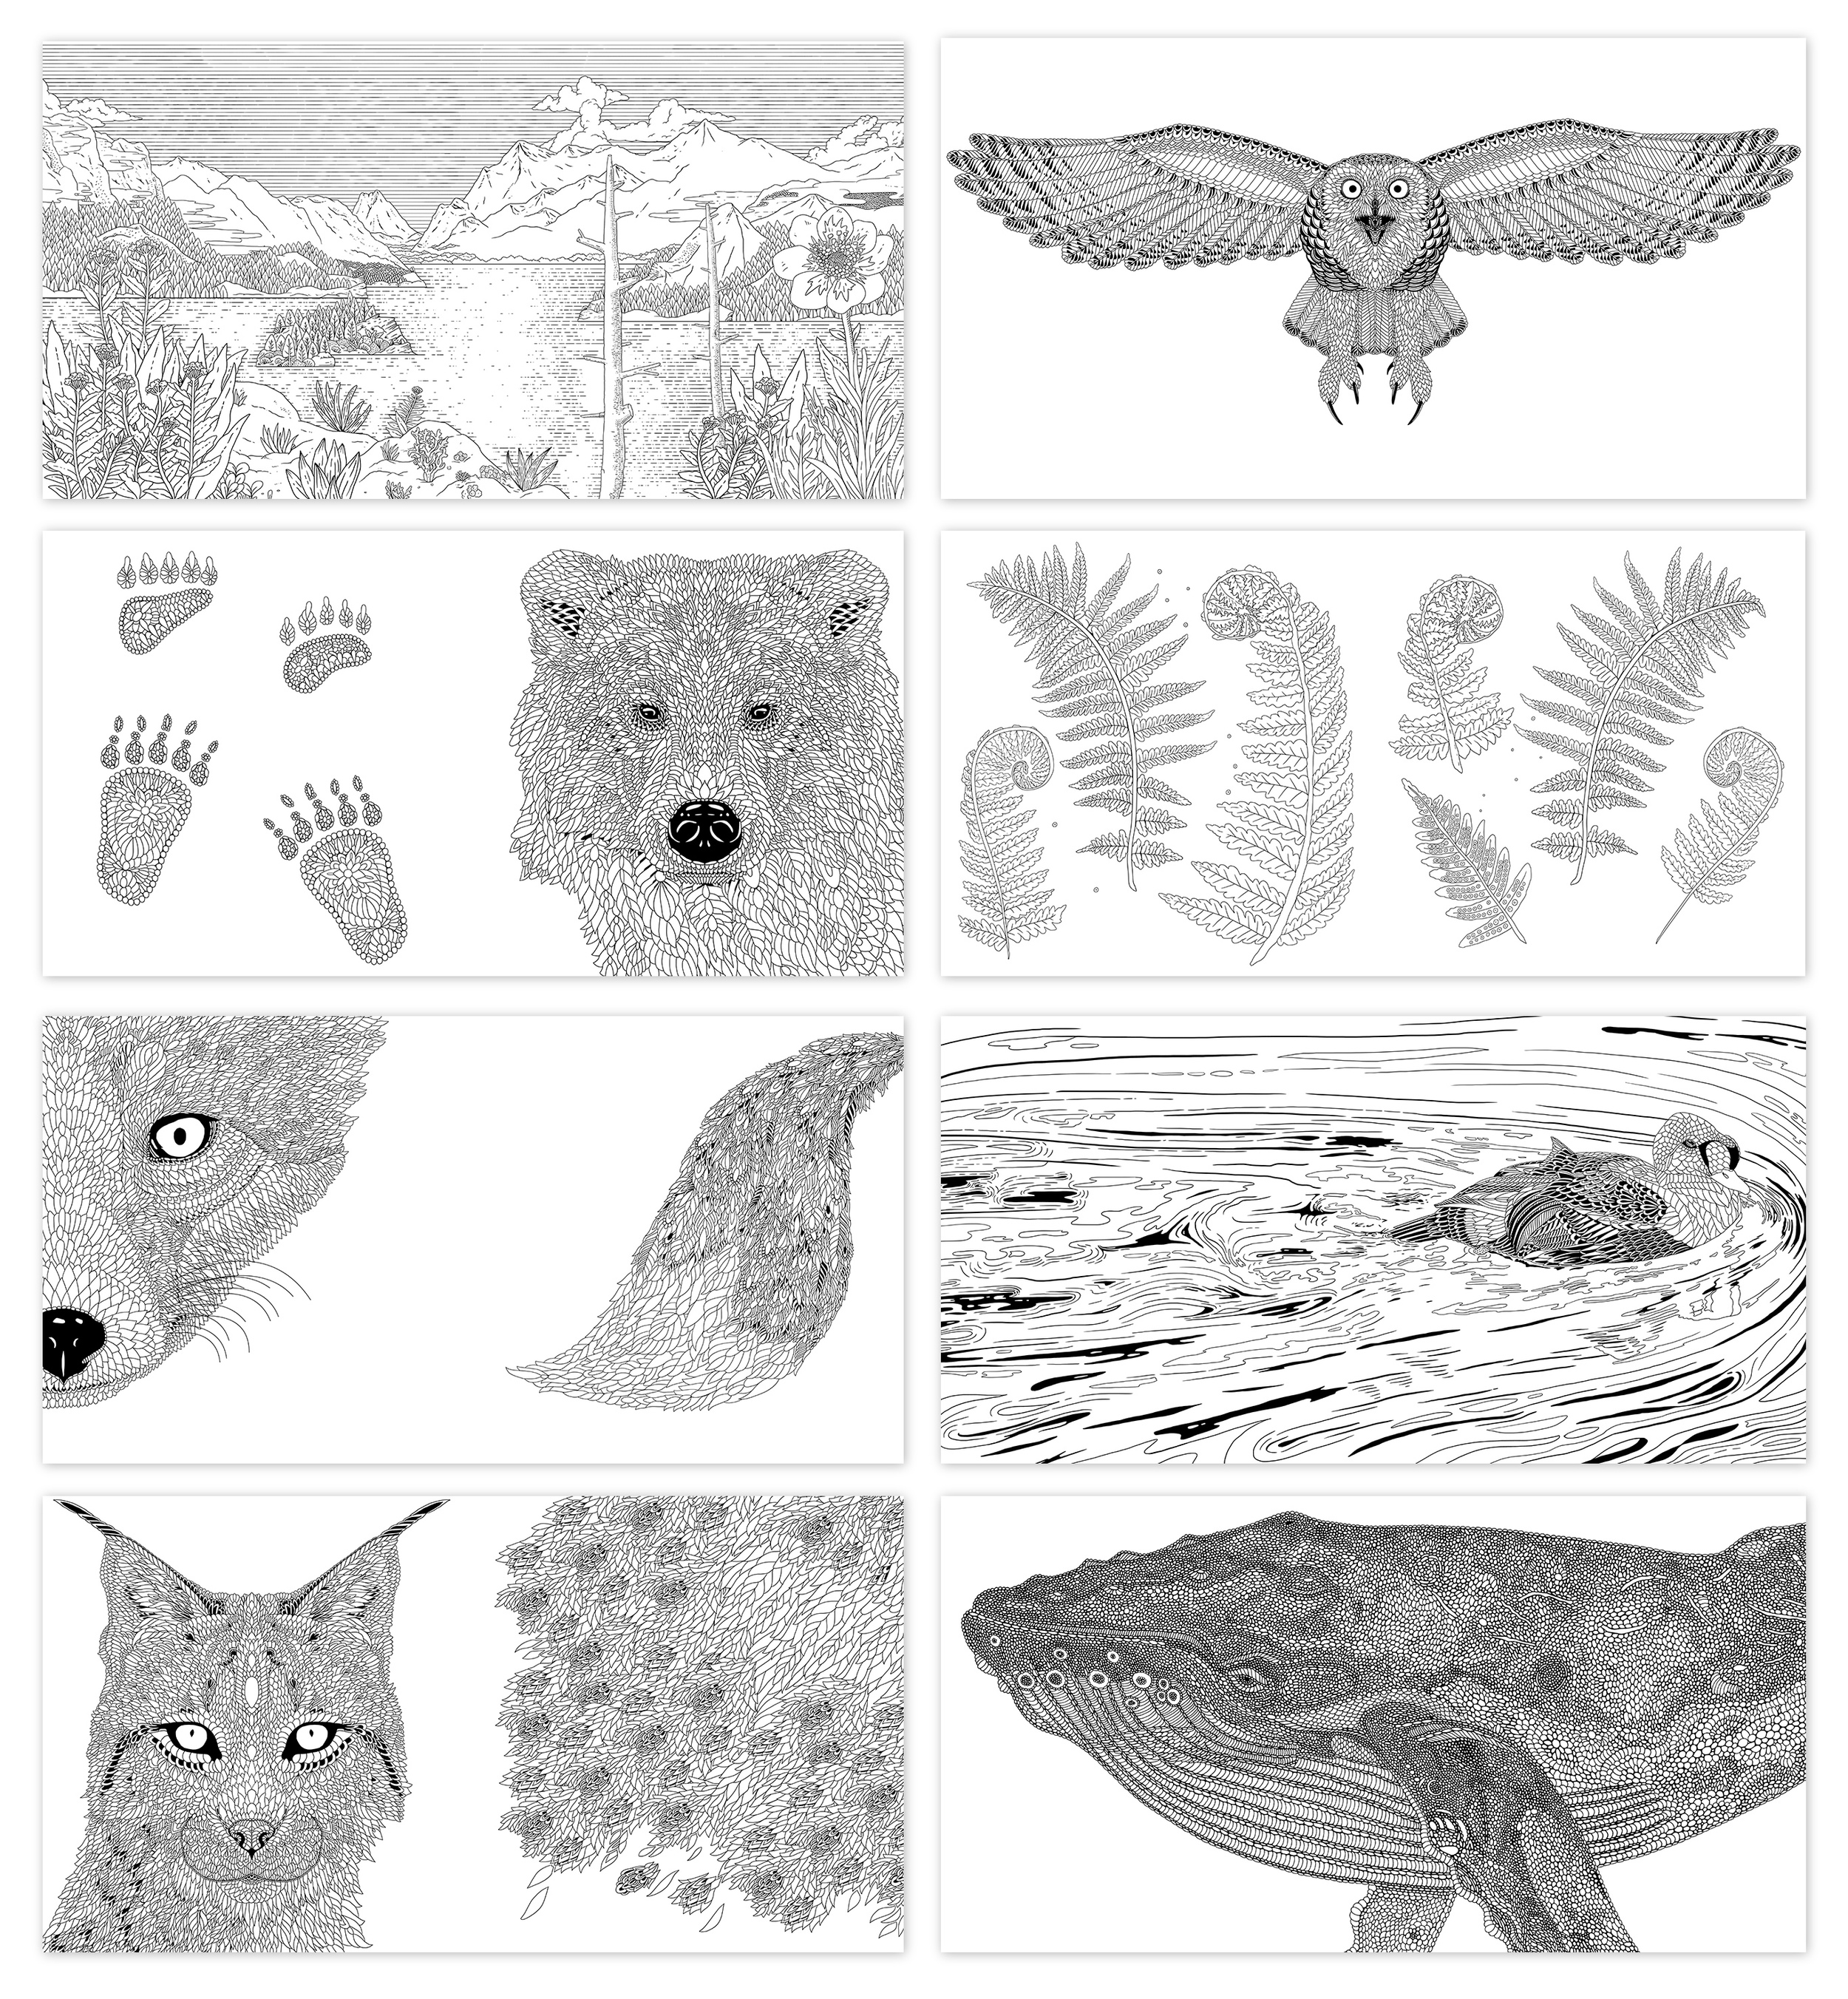 A selection of drawings from the book